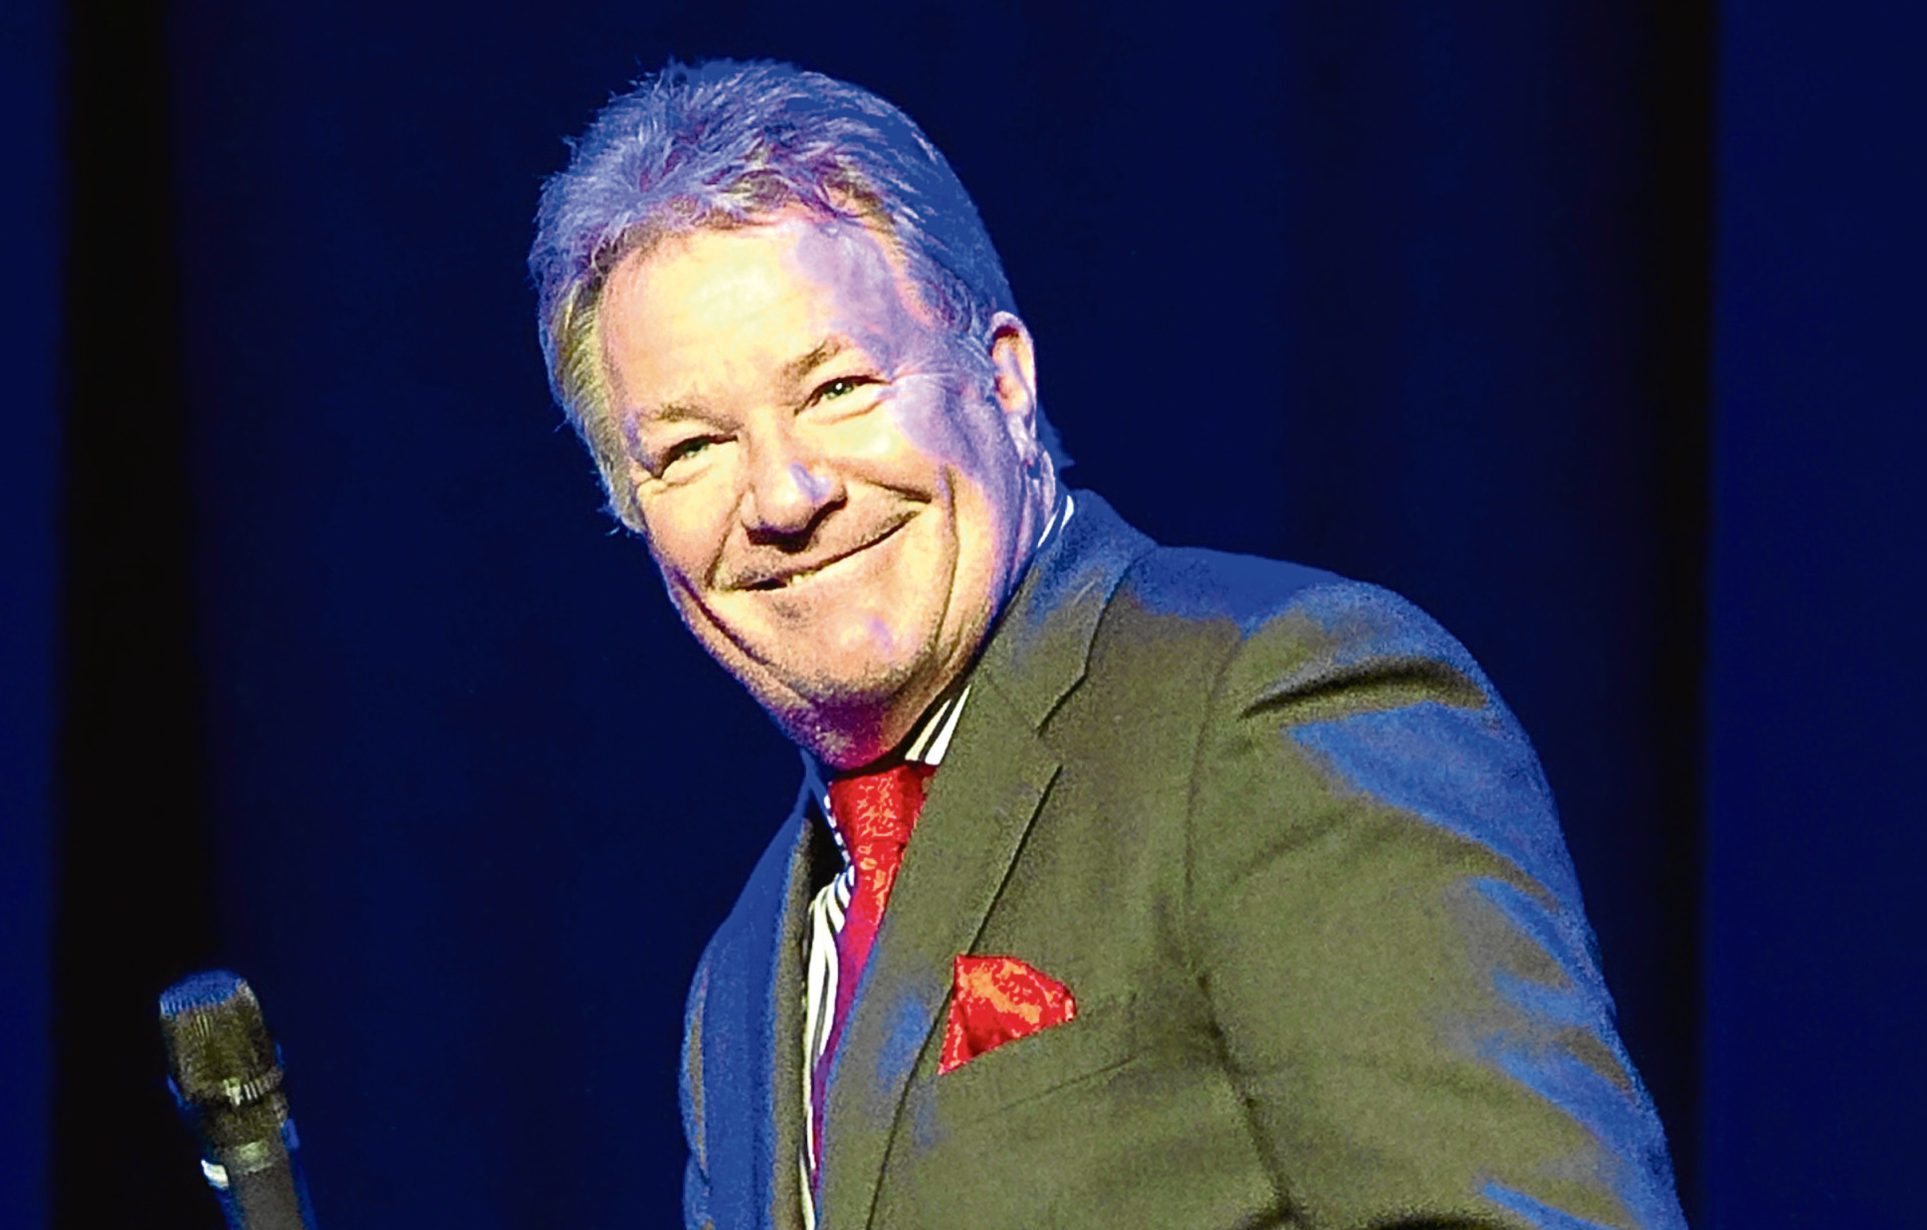 Jim Davidson will perform on stage at the Whitehall Theatre early next year